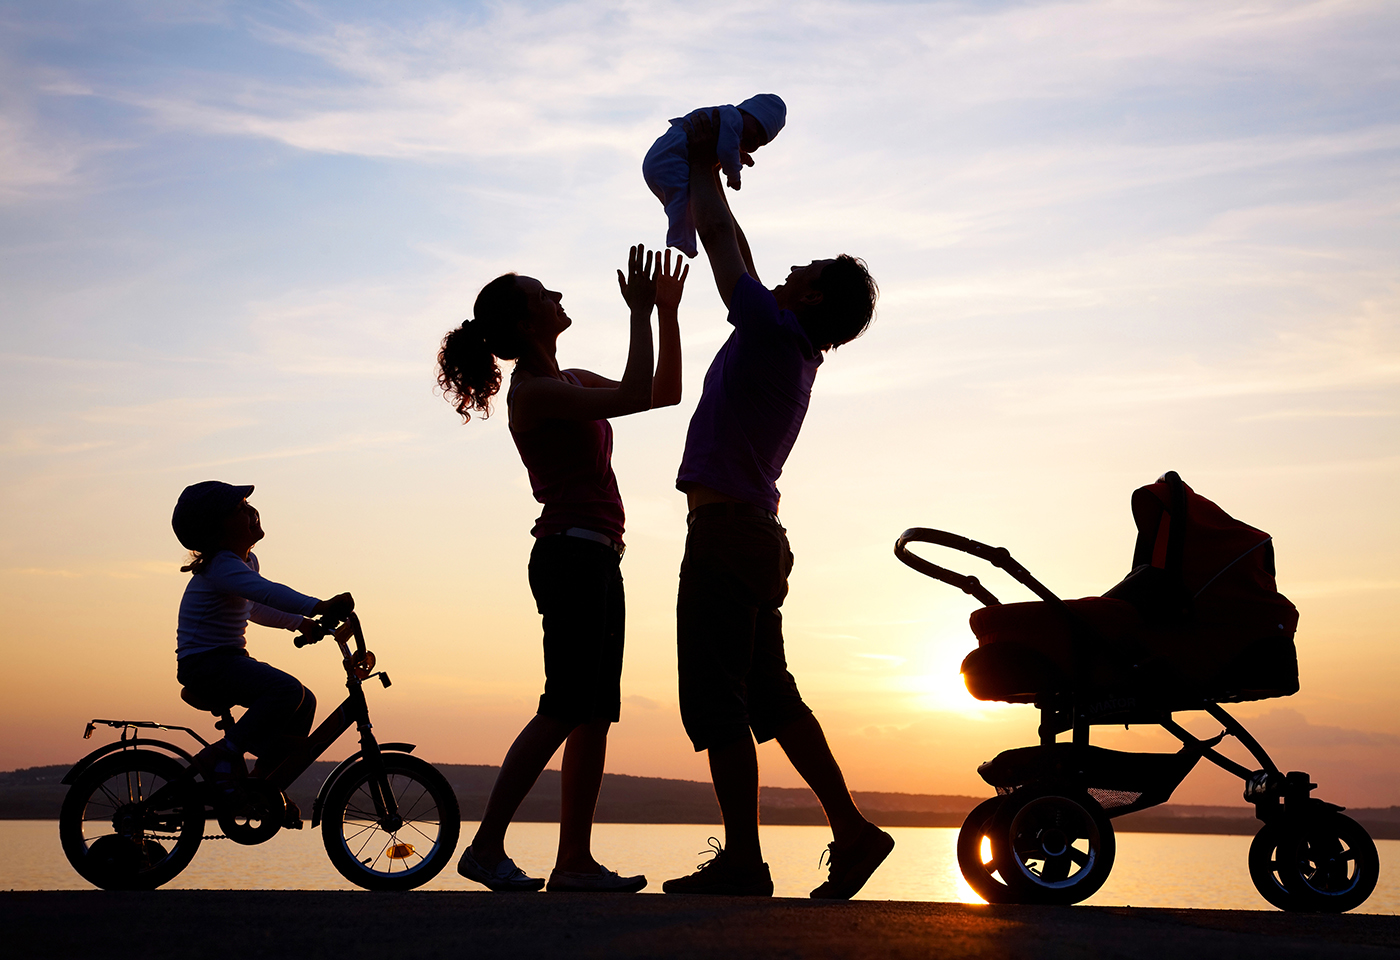 Silhouette family image